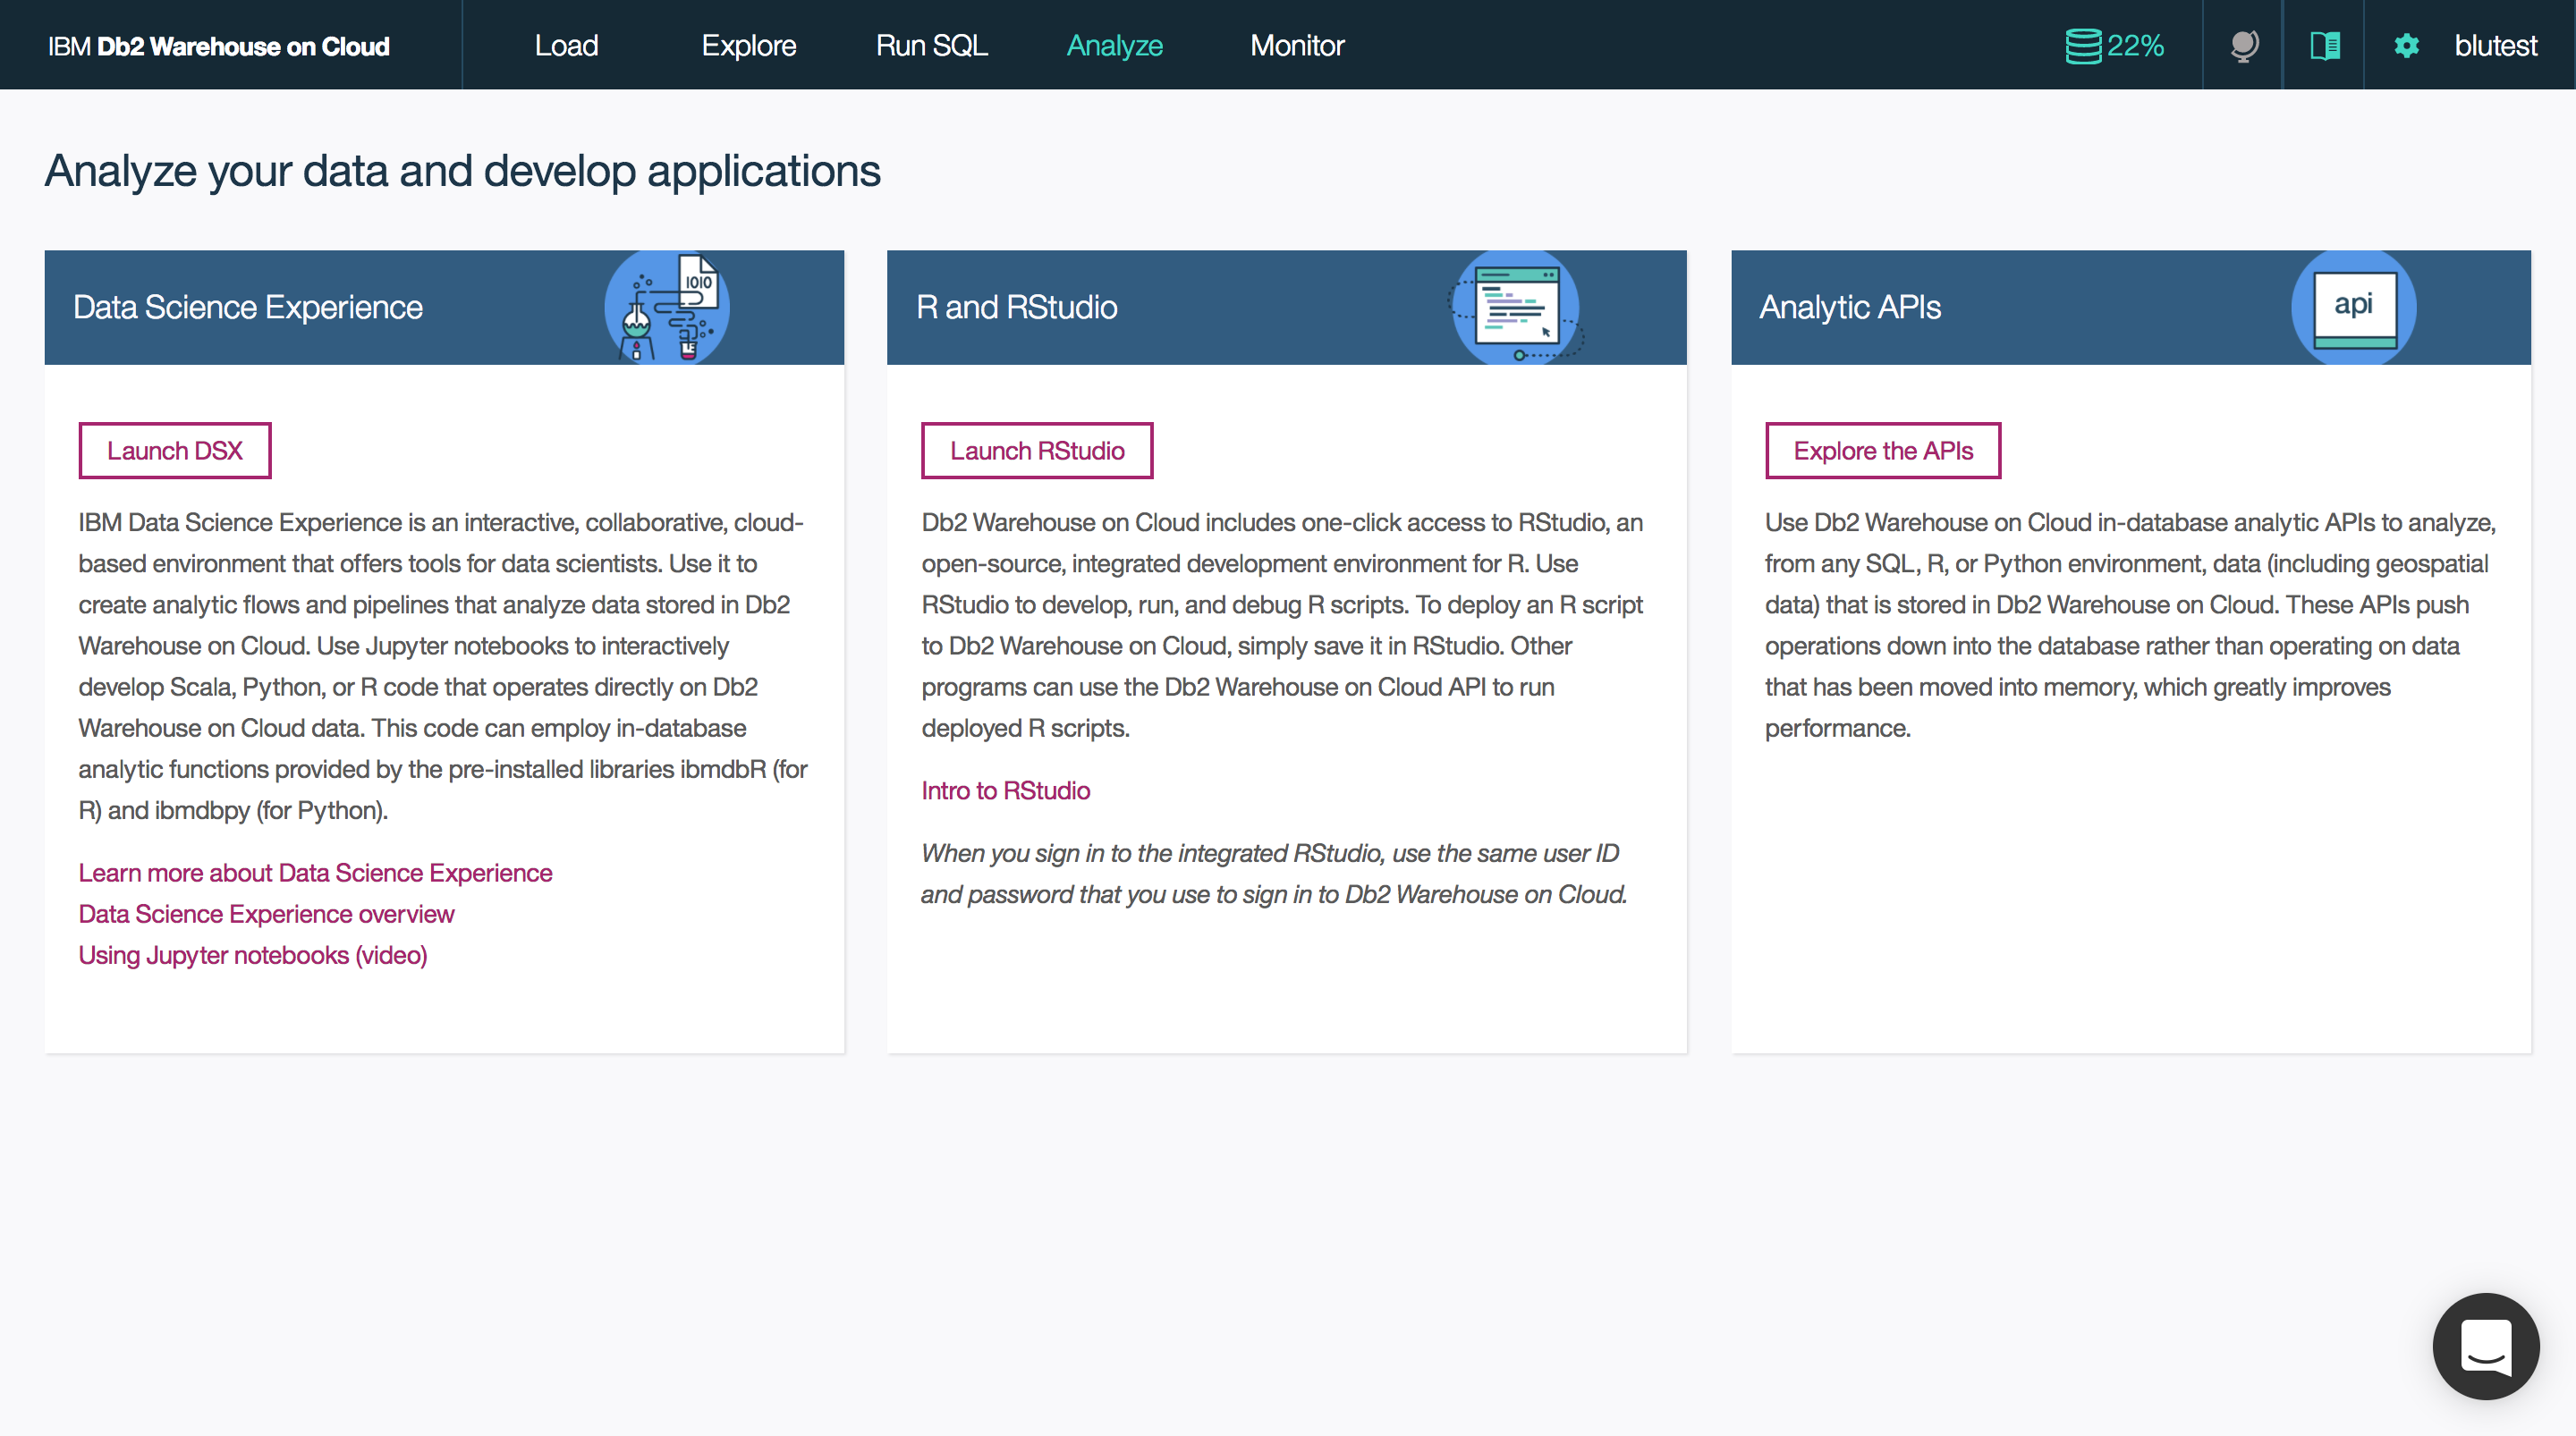 Easily connect tools like IBM Data Science Experience or use the built-in RStudio environment to analyze your data, or use in-database analytic APIs to improve performance of data analysis.